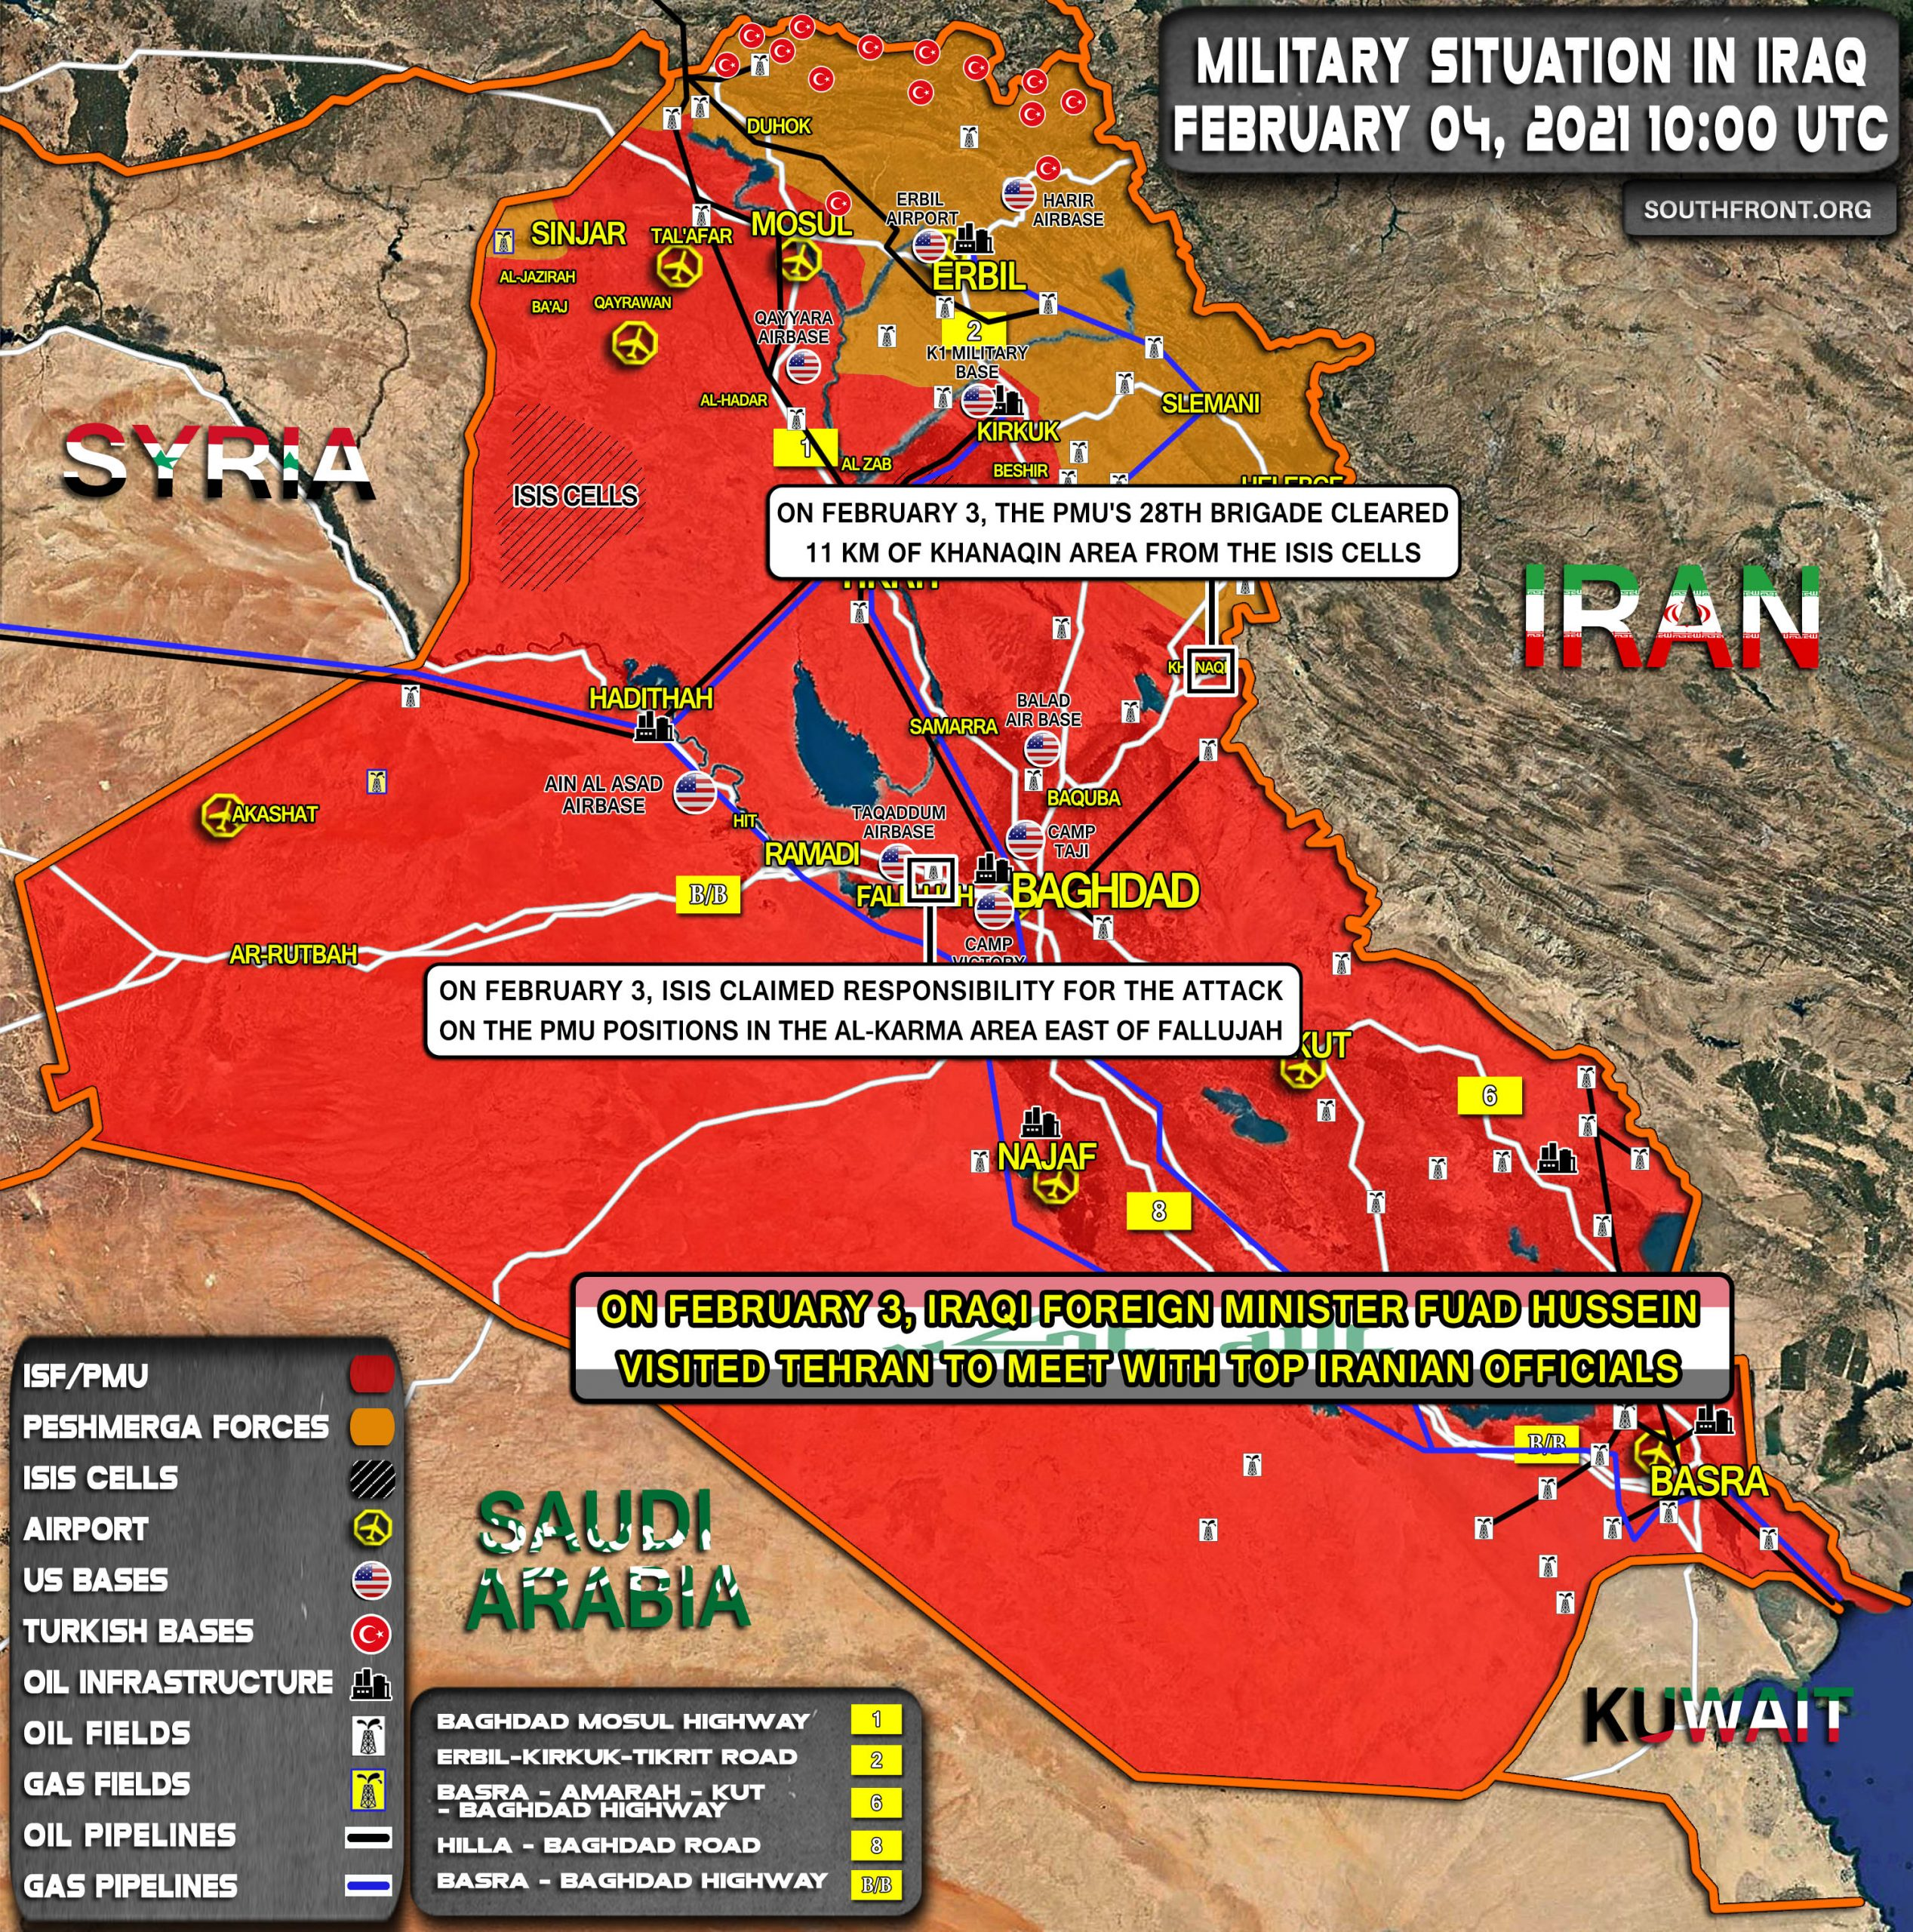 Military Situation In Iraq On February 4, 2021 (Map Update)